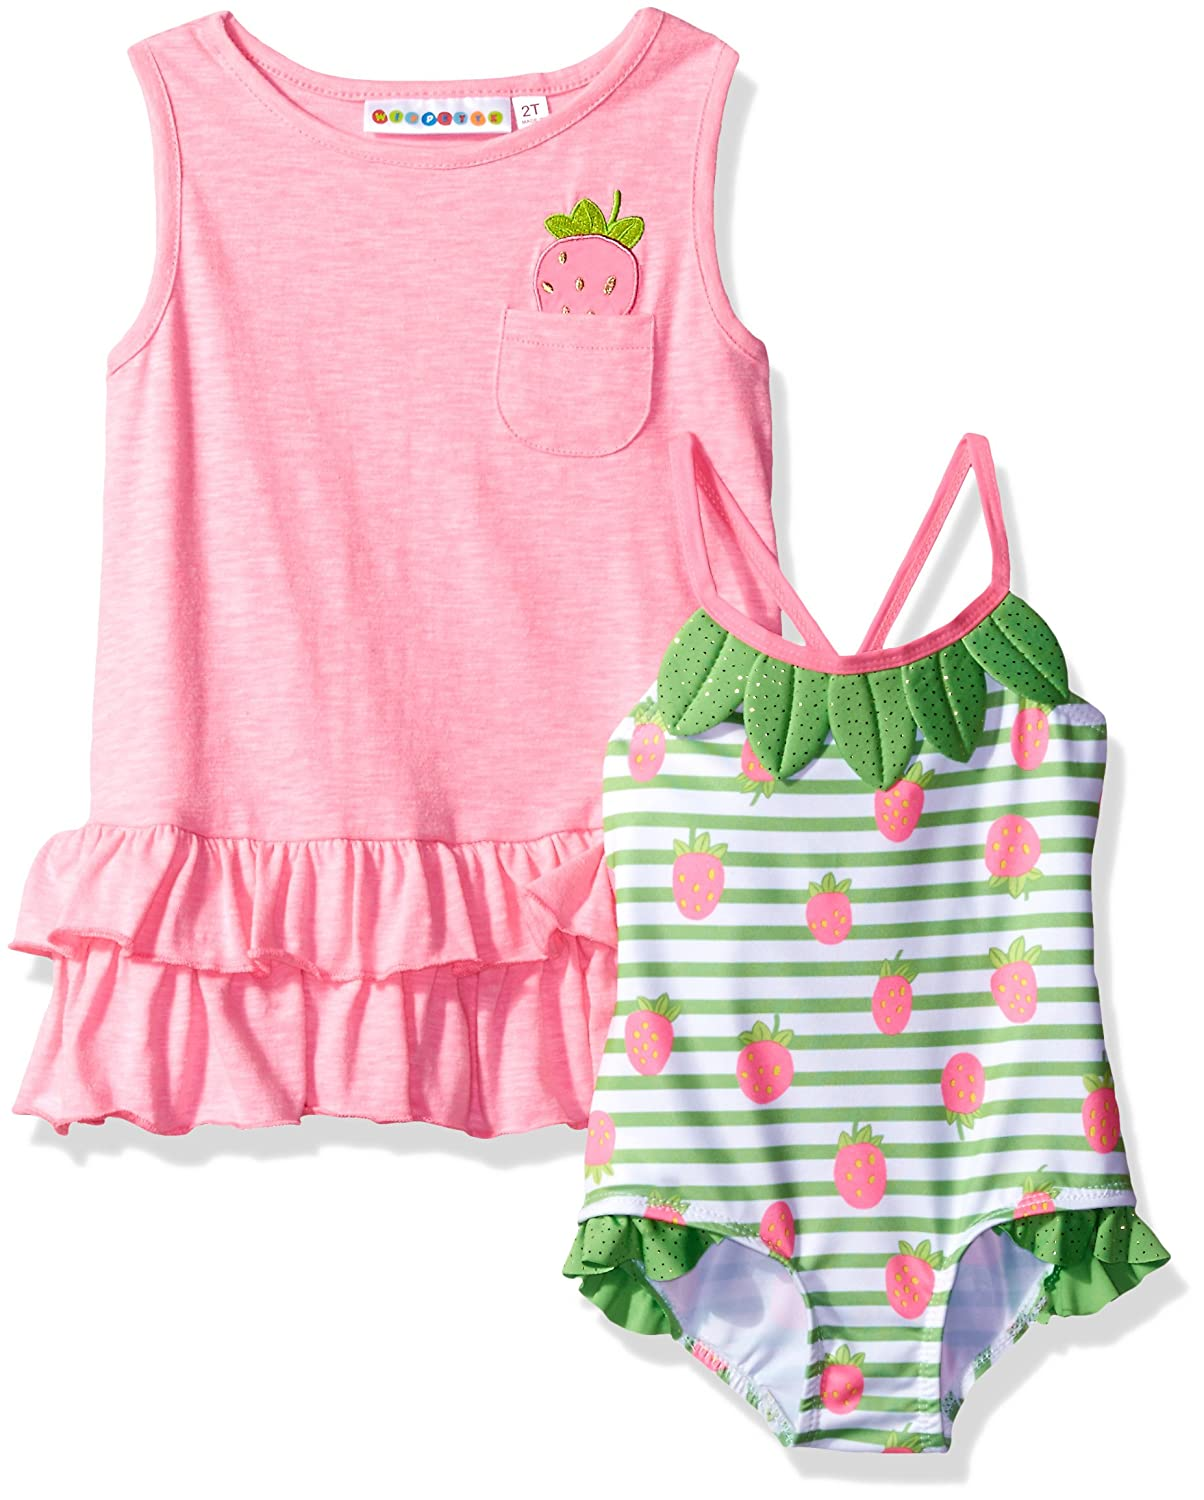 Wippette Baby Girls' Strawberry Swim and Cover Up Set, Sugar Plum 0/6M 89072